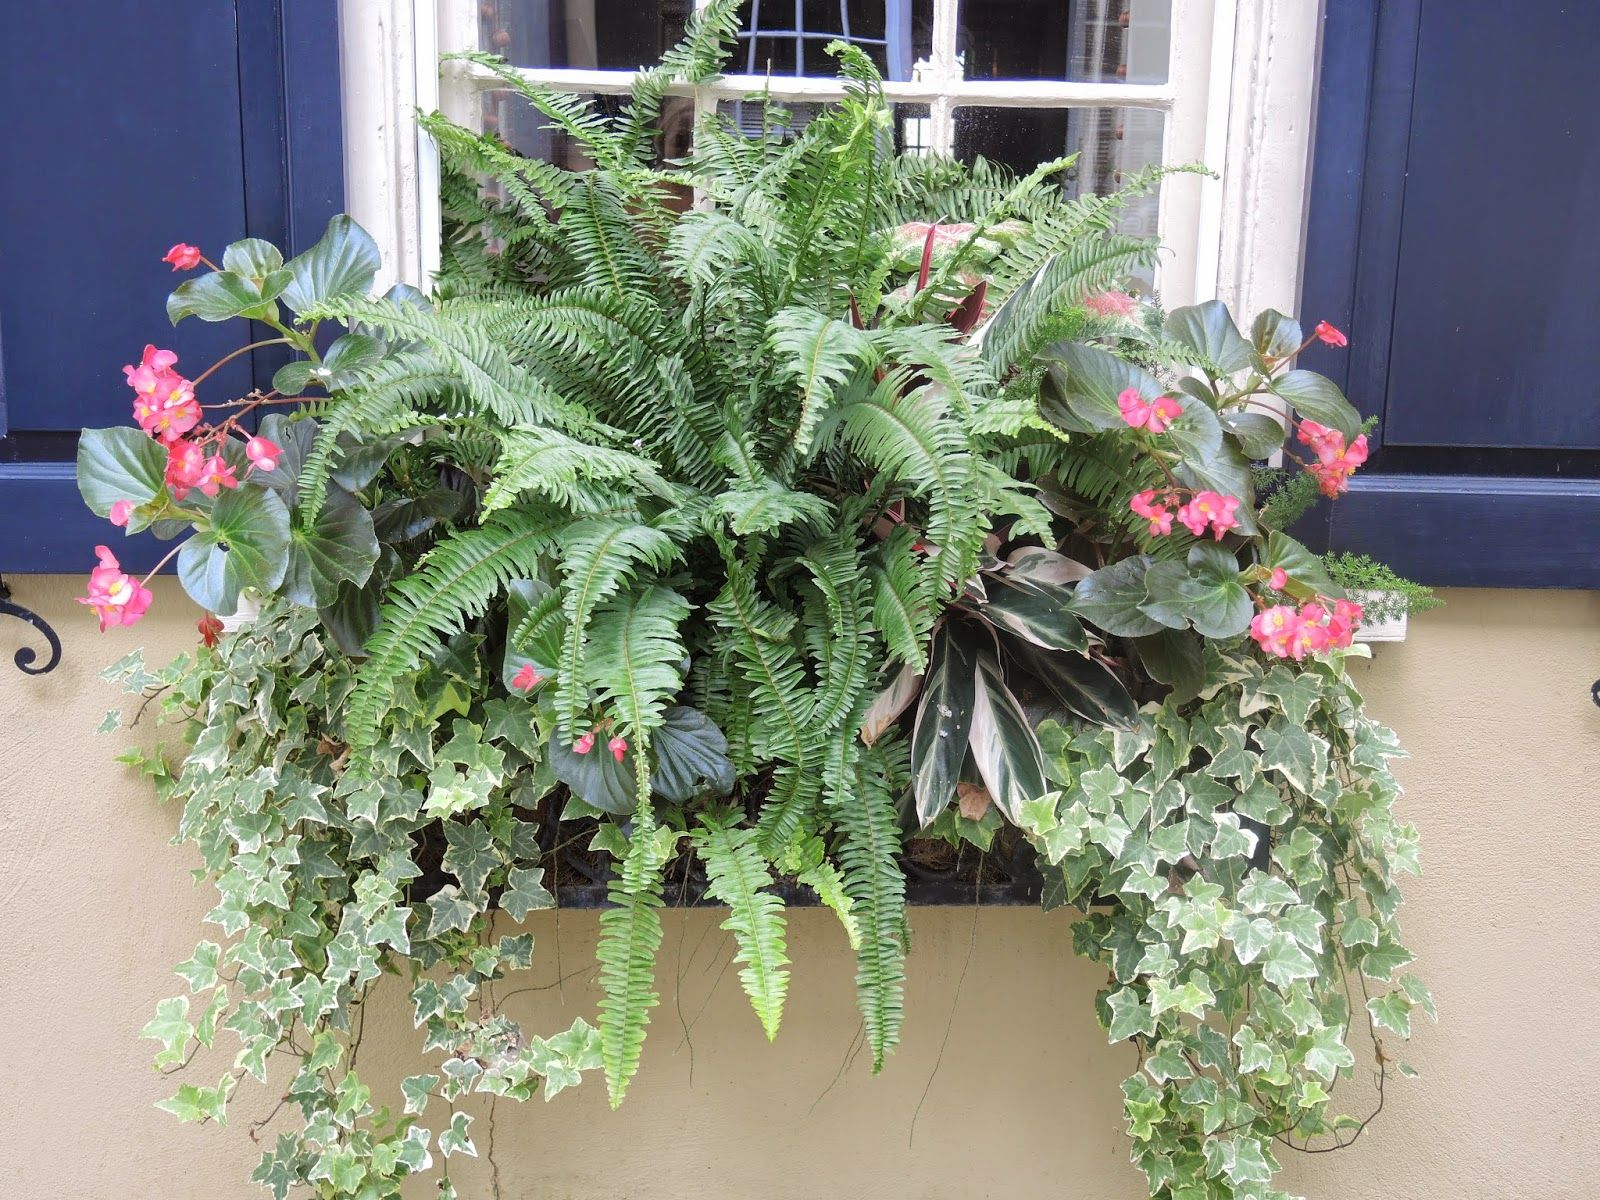 Christmas window box filler - Shade Window Box Begonias Ivy Ferns Flower Window Box Planter For Shade Pink And